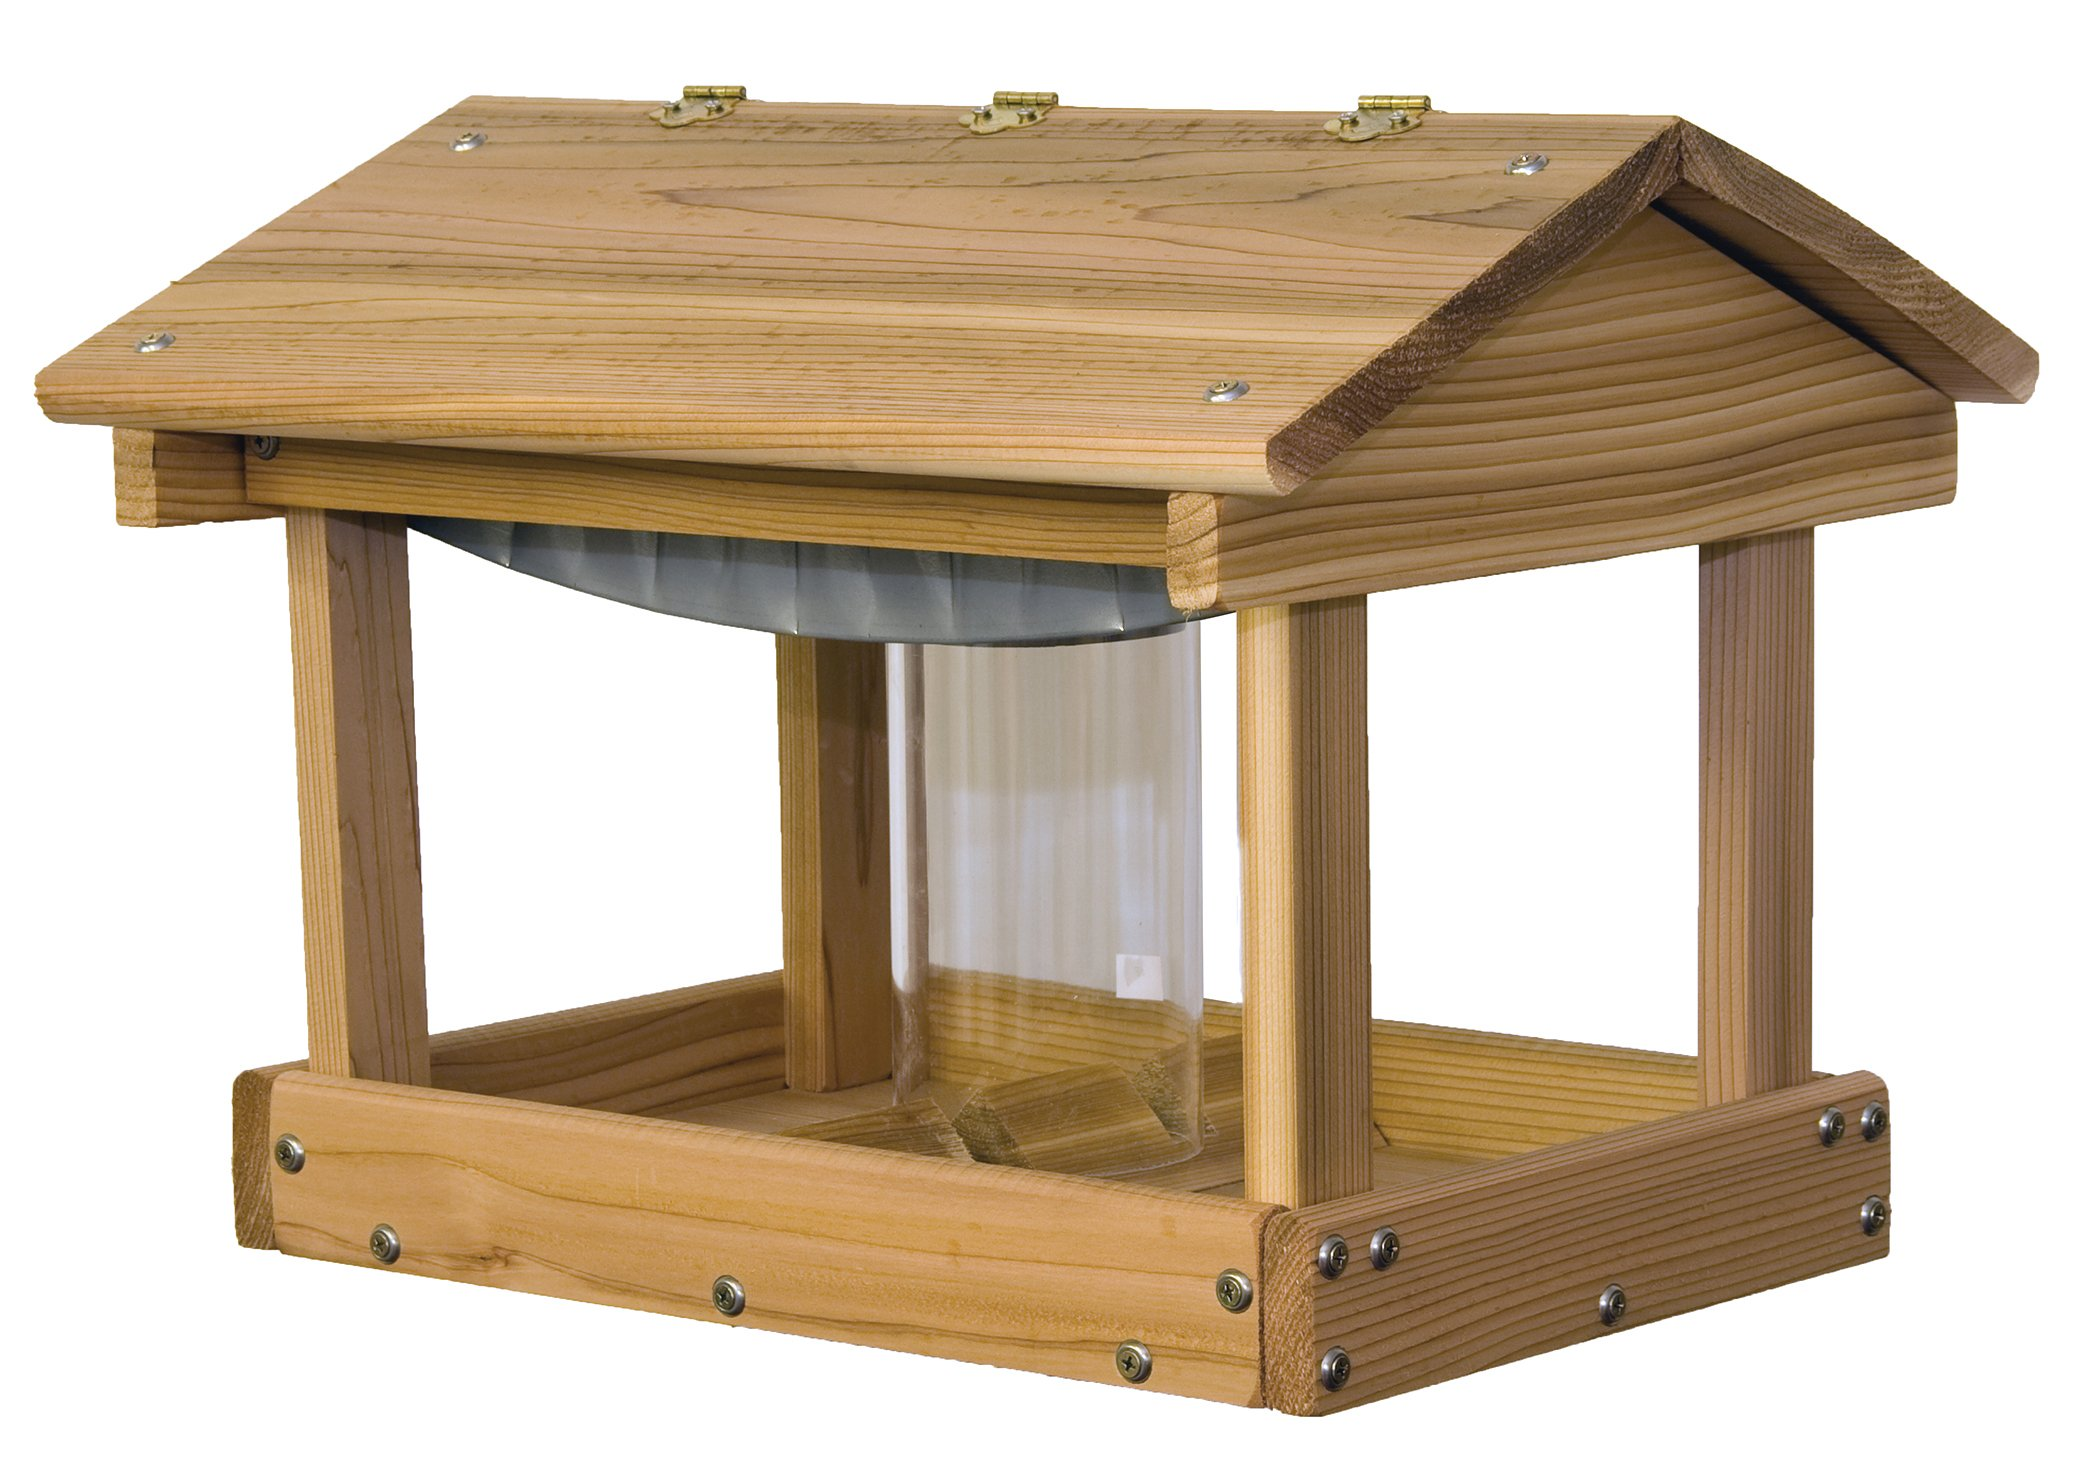 Stovall 6F Pavilion Feeder with Seed Hopper by Stovall Products